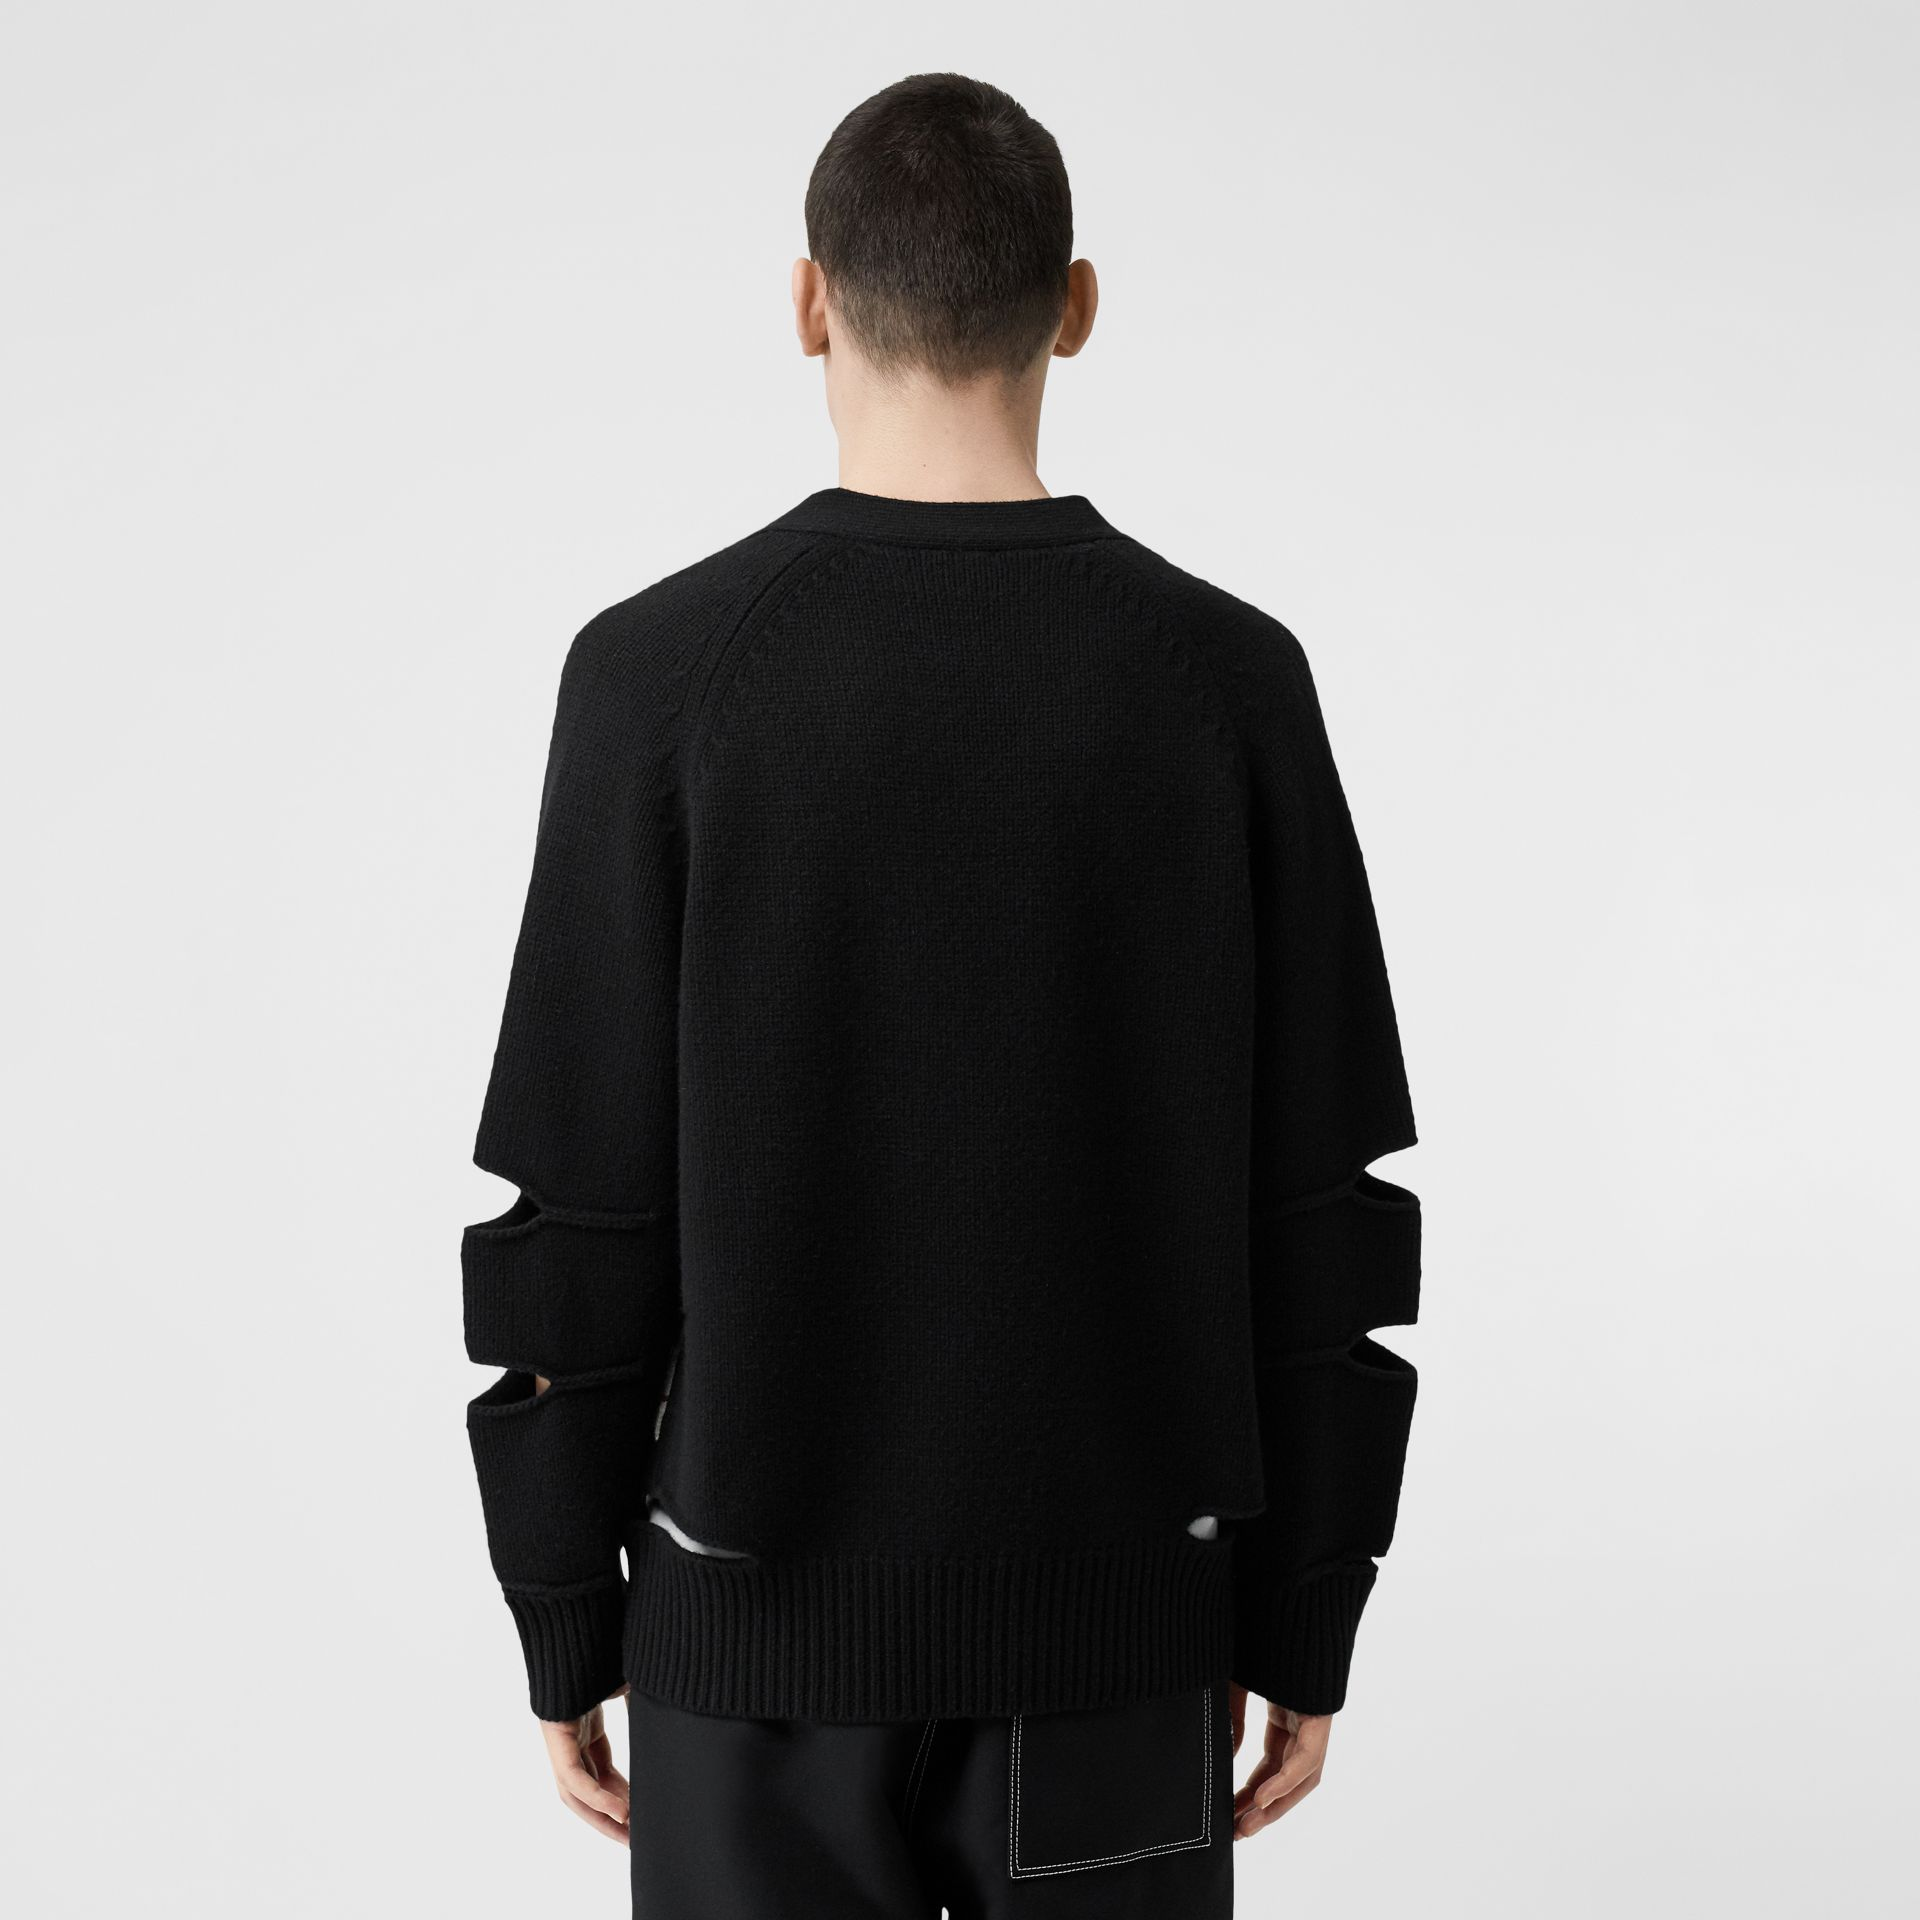 Cut-out Detail Merino Wool Cashmere Cardigan in Black - Men | Burberry - gallery image 2